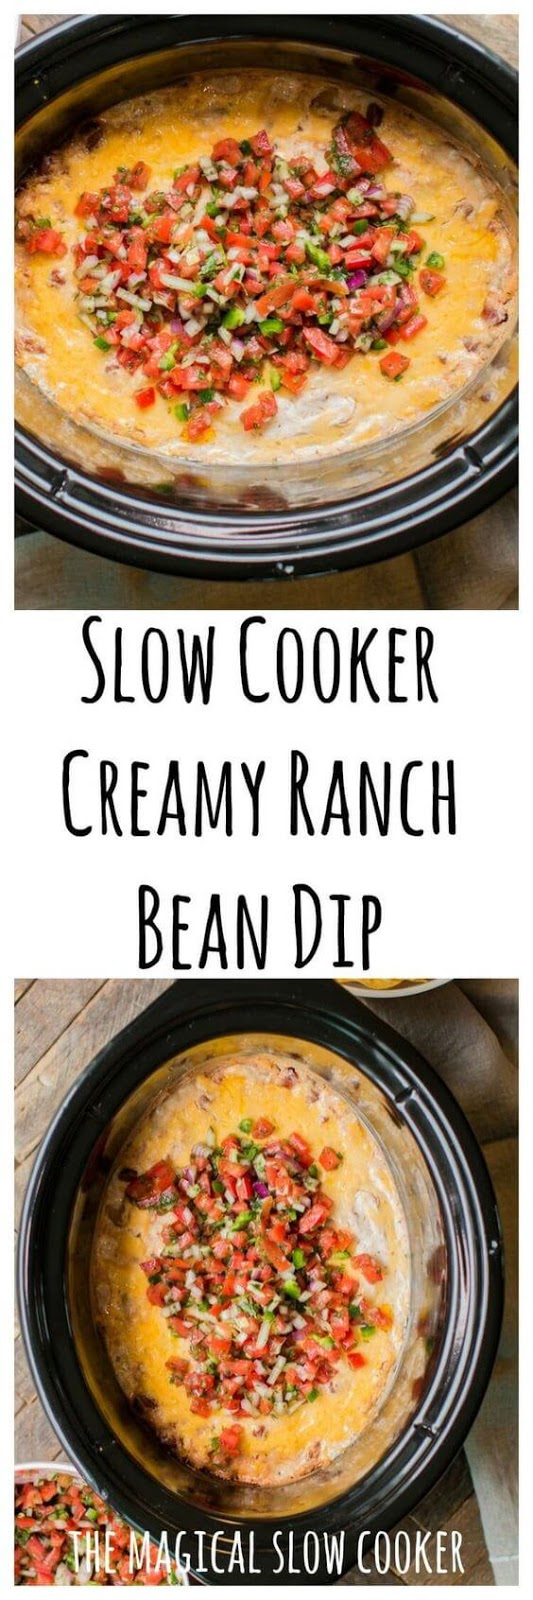 Slow Cooker Creamy Ranch Dip